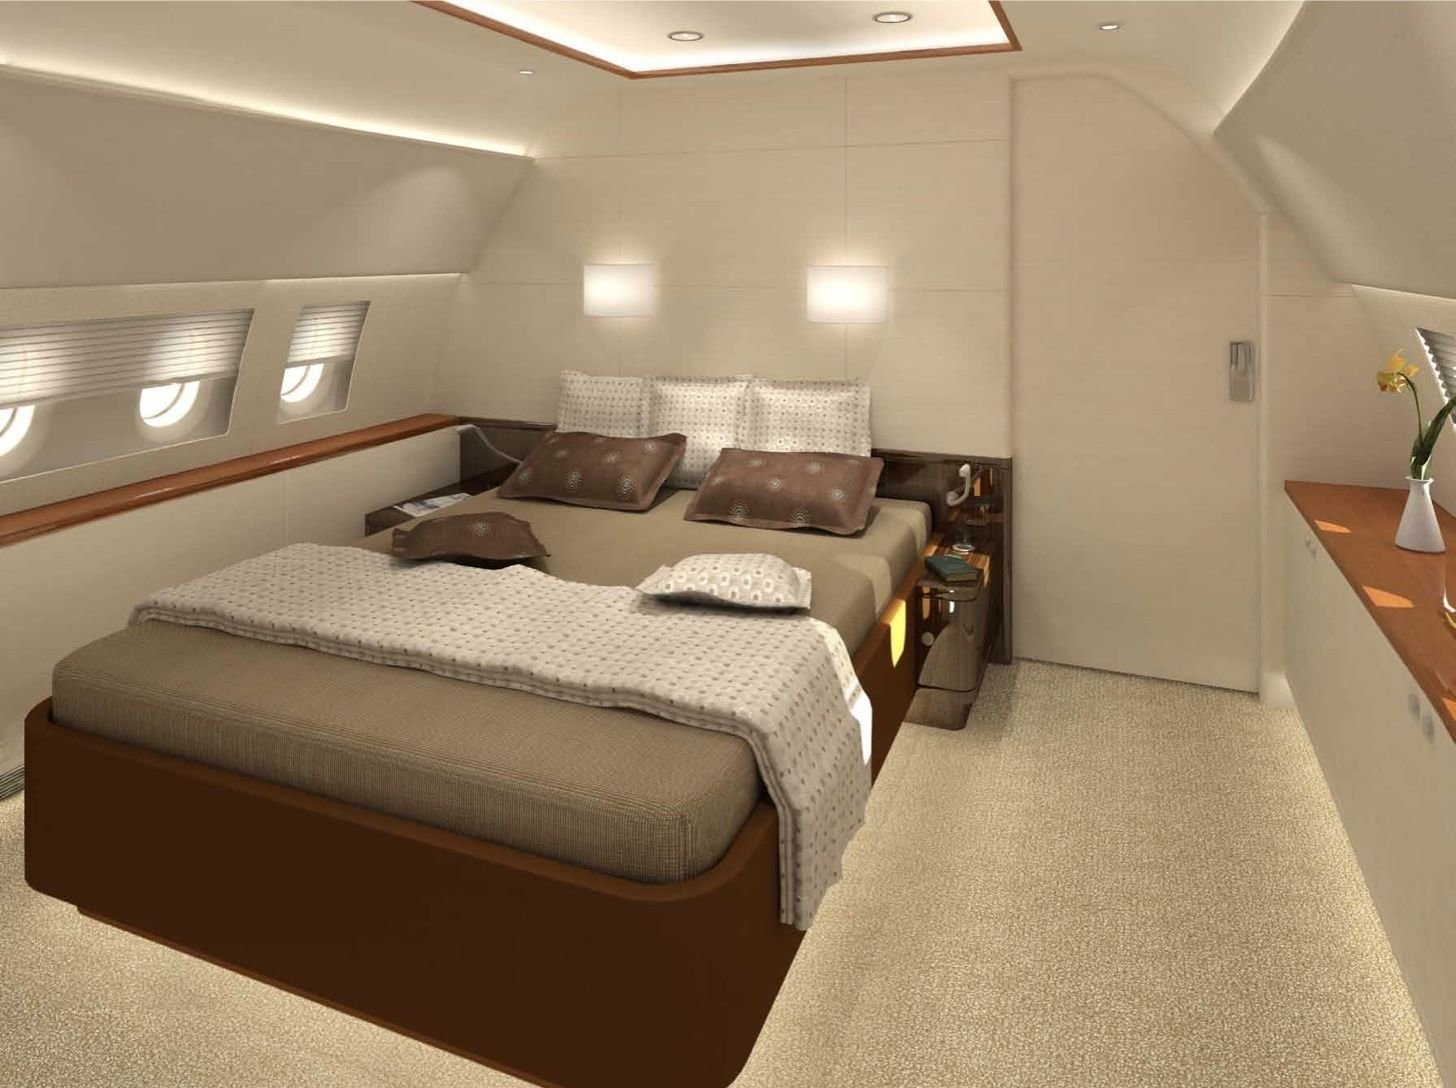 Best Private Jet Interior Design For Your Flying Mobile Home With Pictures